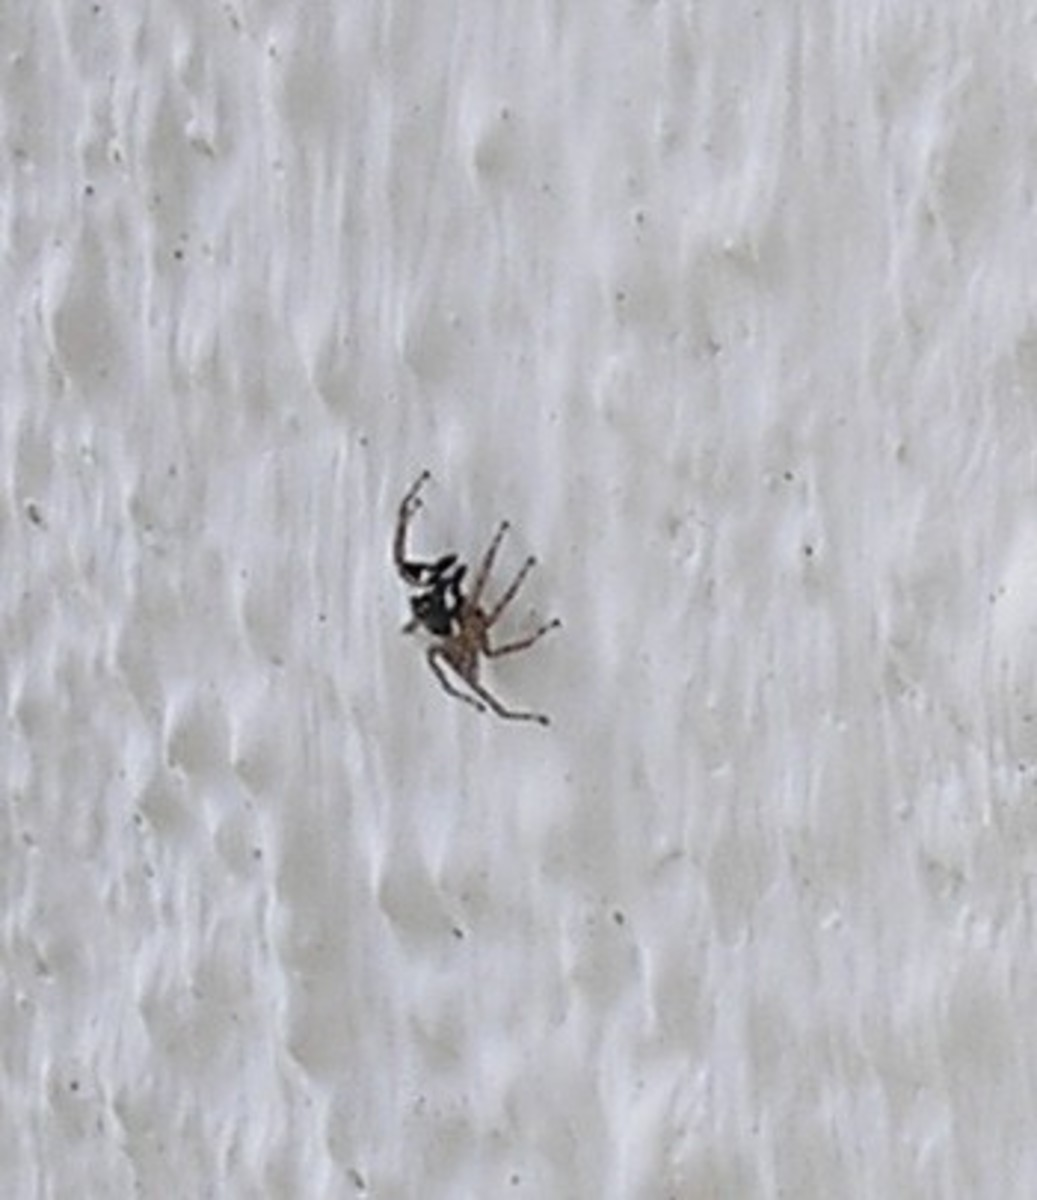 Jumping spider on a wall